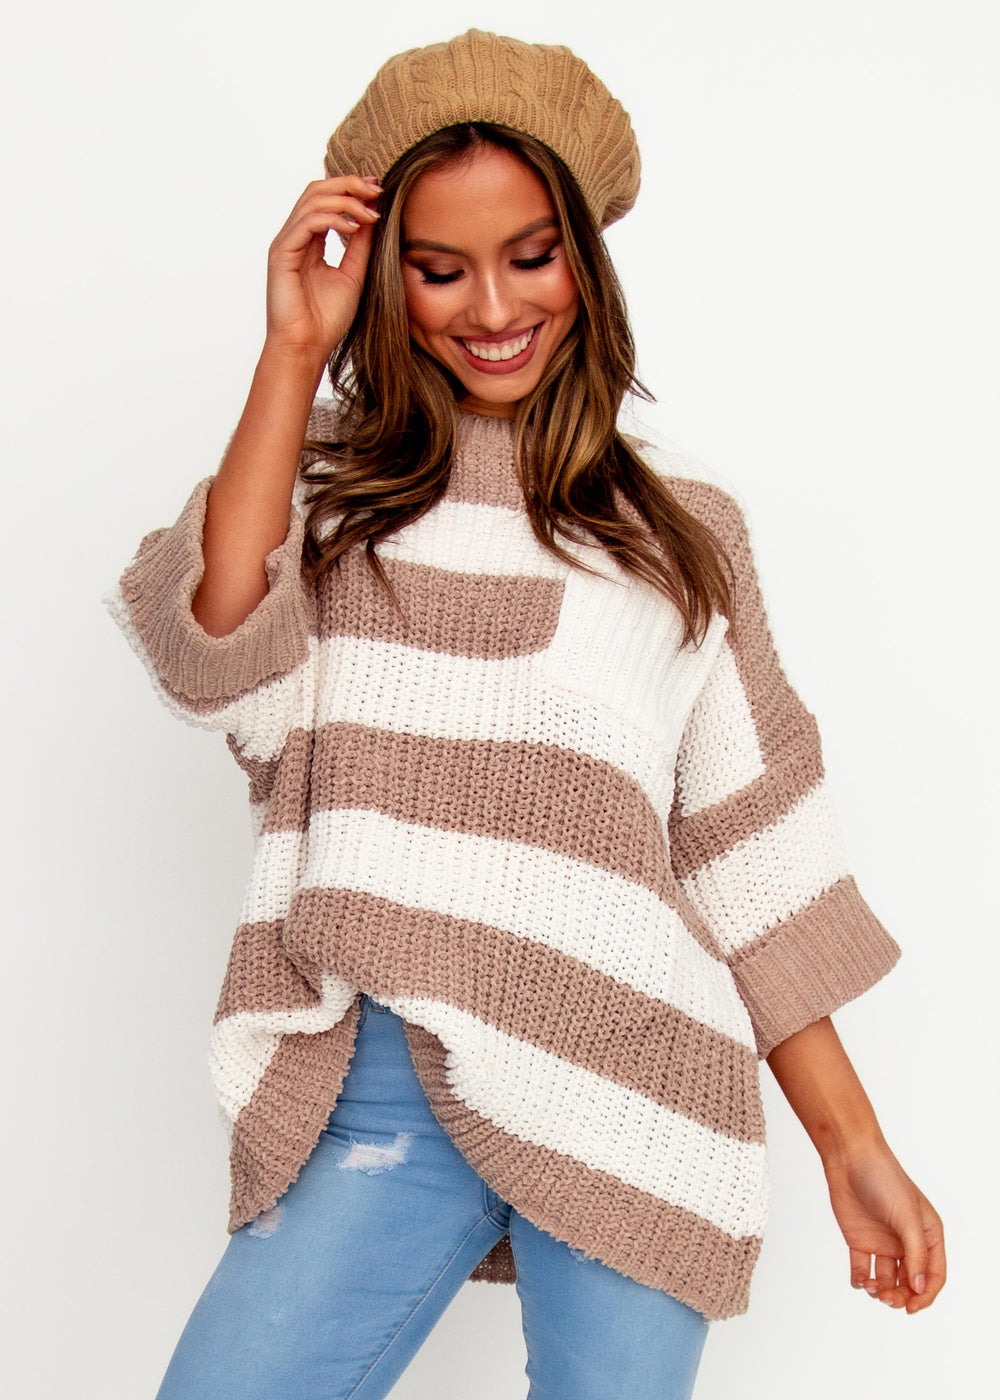 Women's Love Letter Sweater - Beige/White